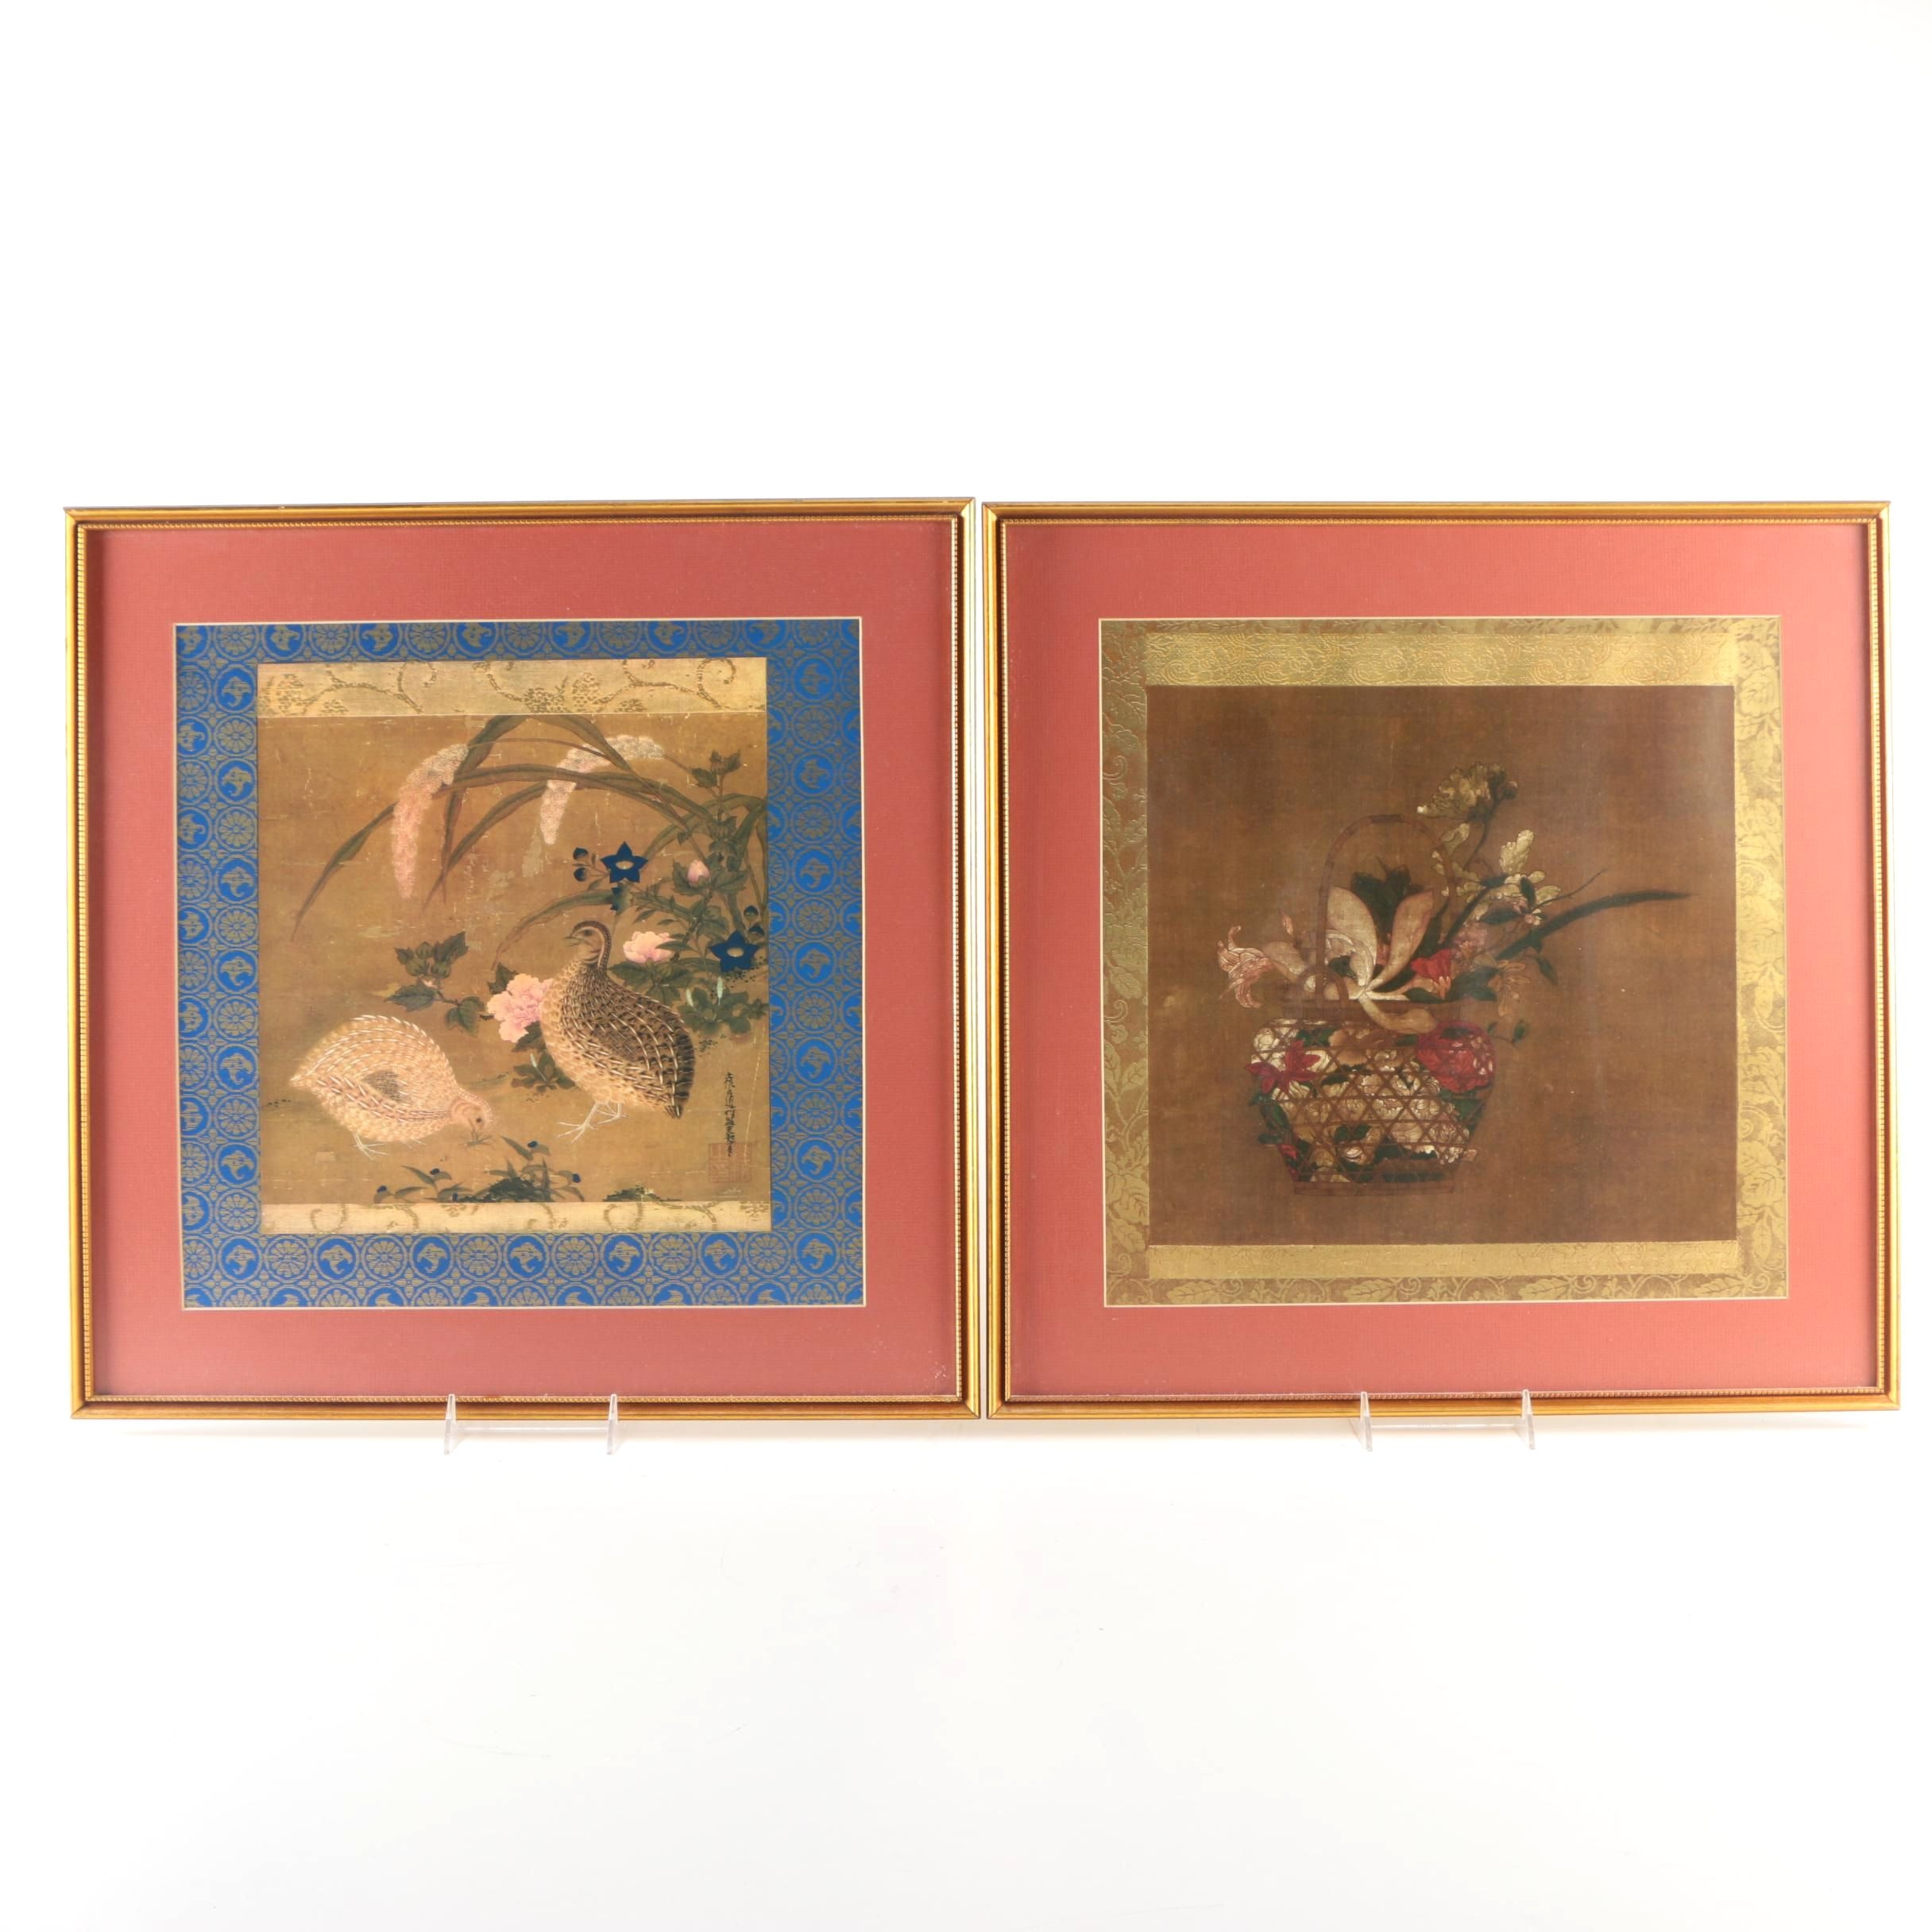 Offset Lithographs After East Asian Paintings